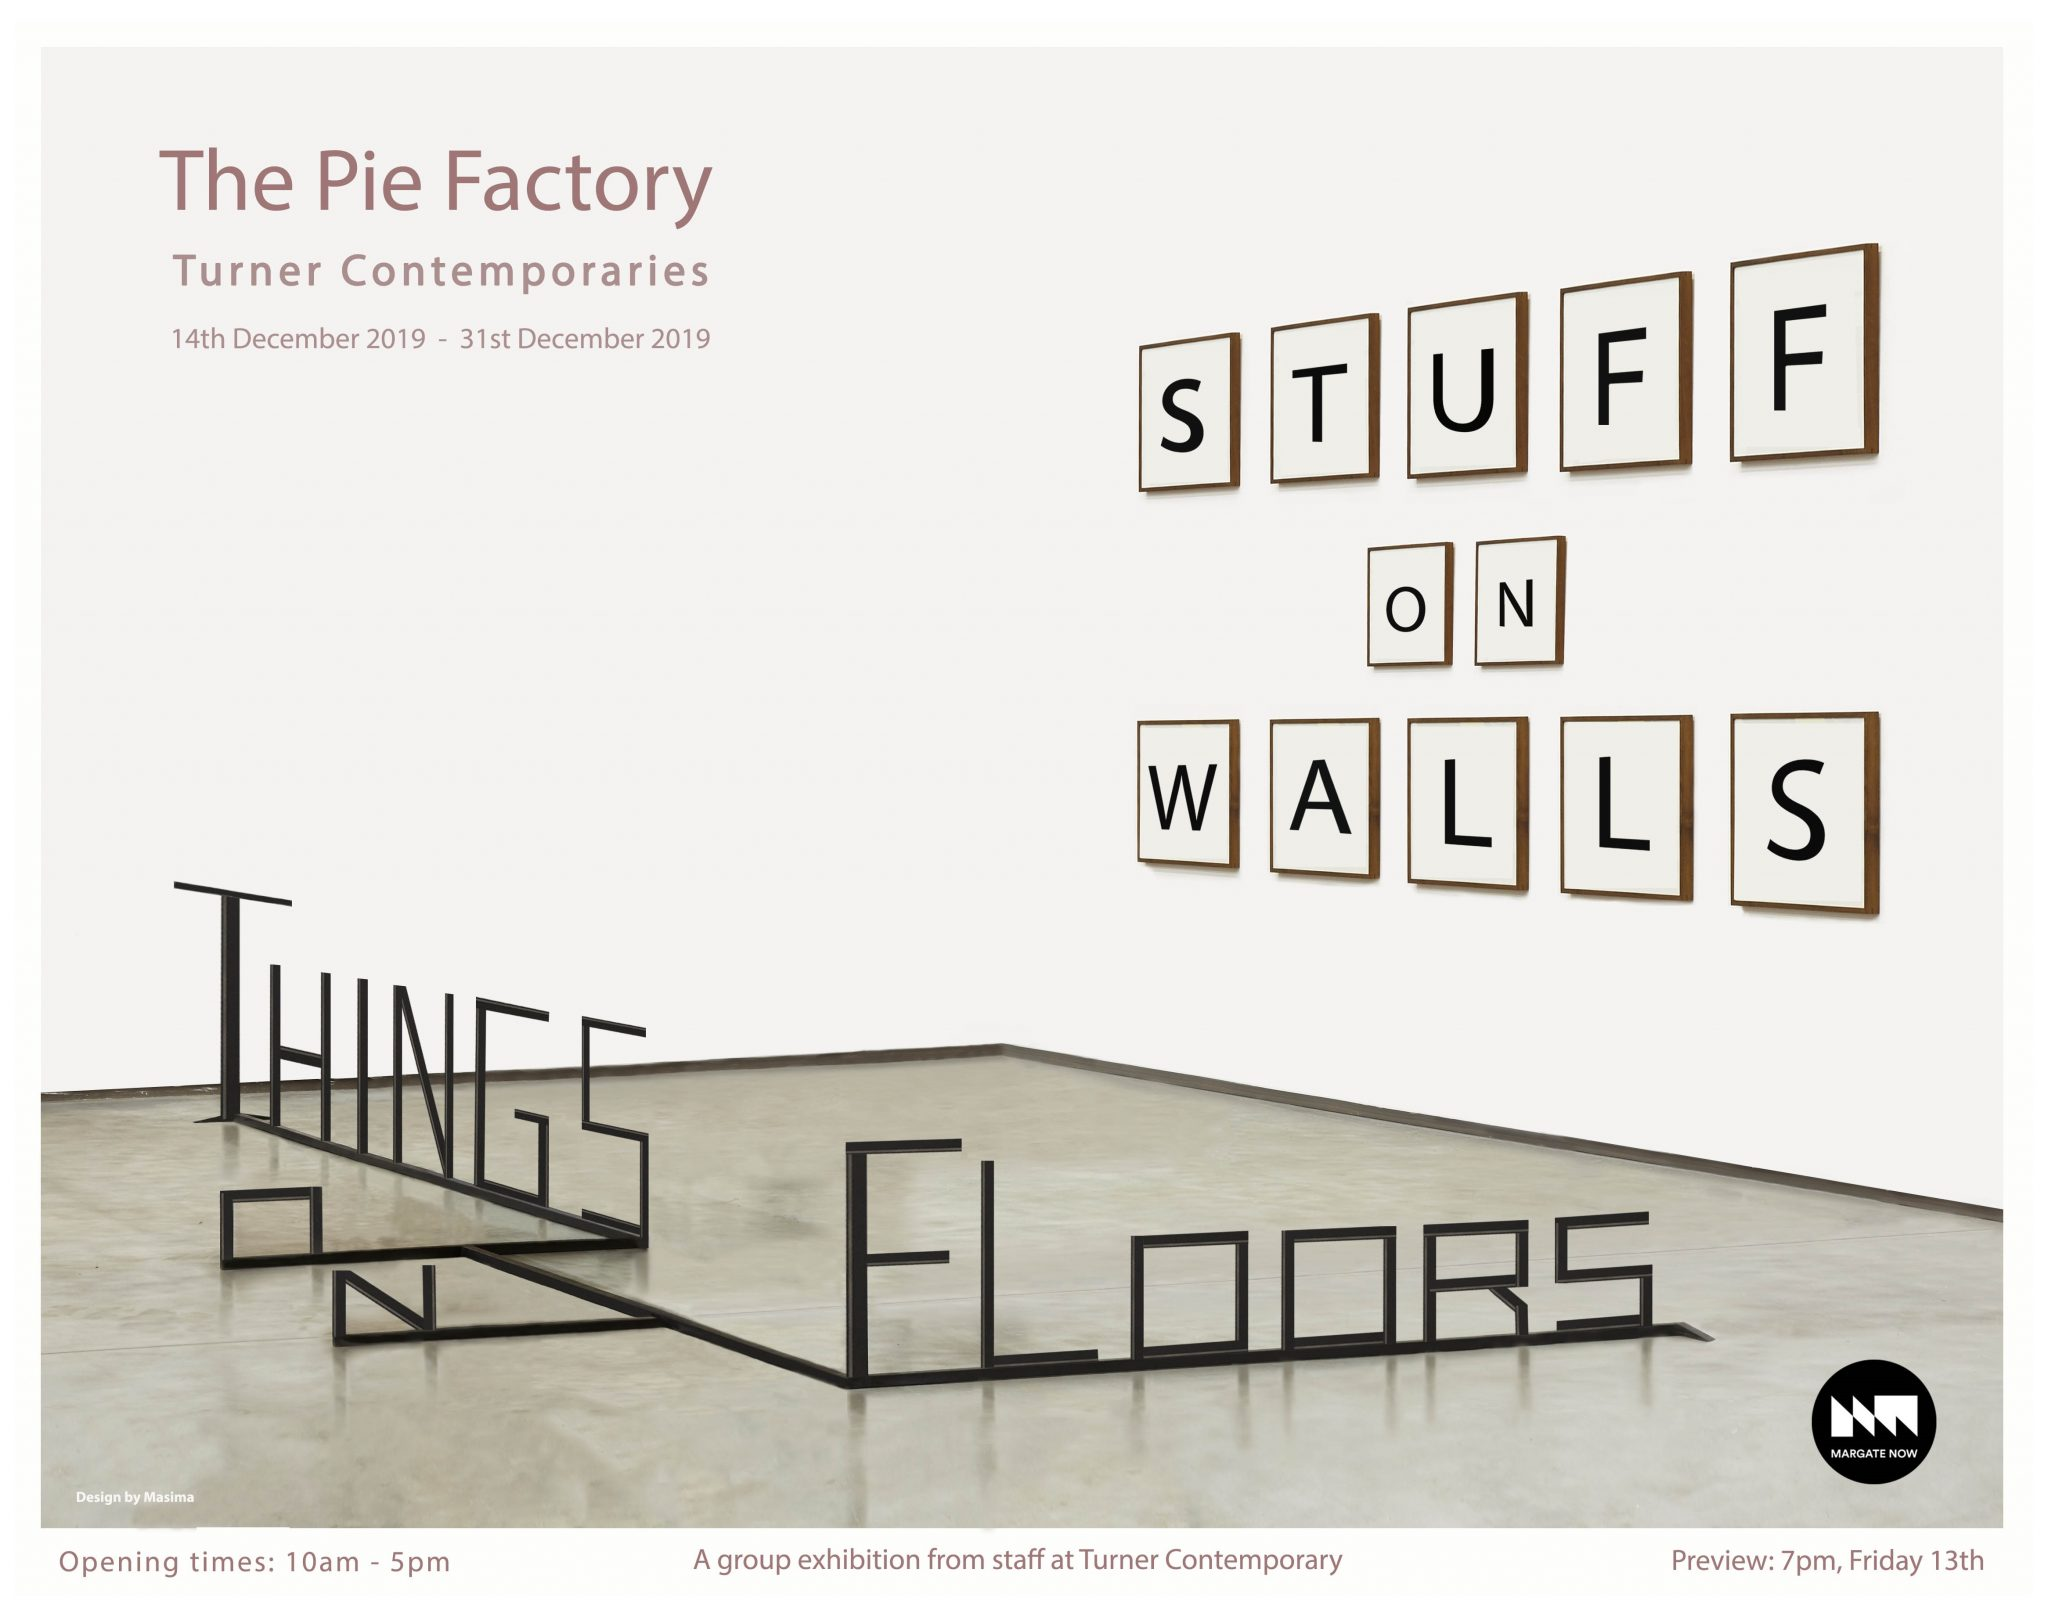 Turner Contemporaries Stuff on Walls Things on Floors Pie Factory Margate exhibition